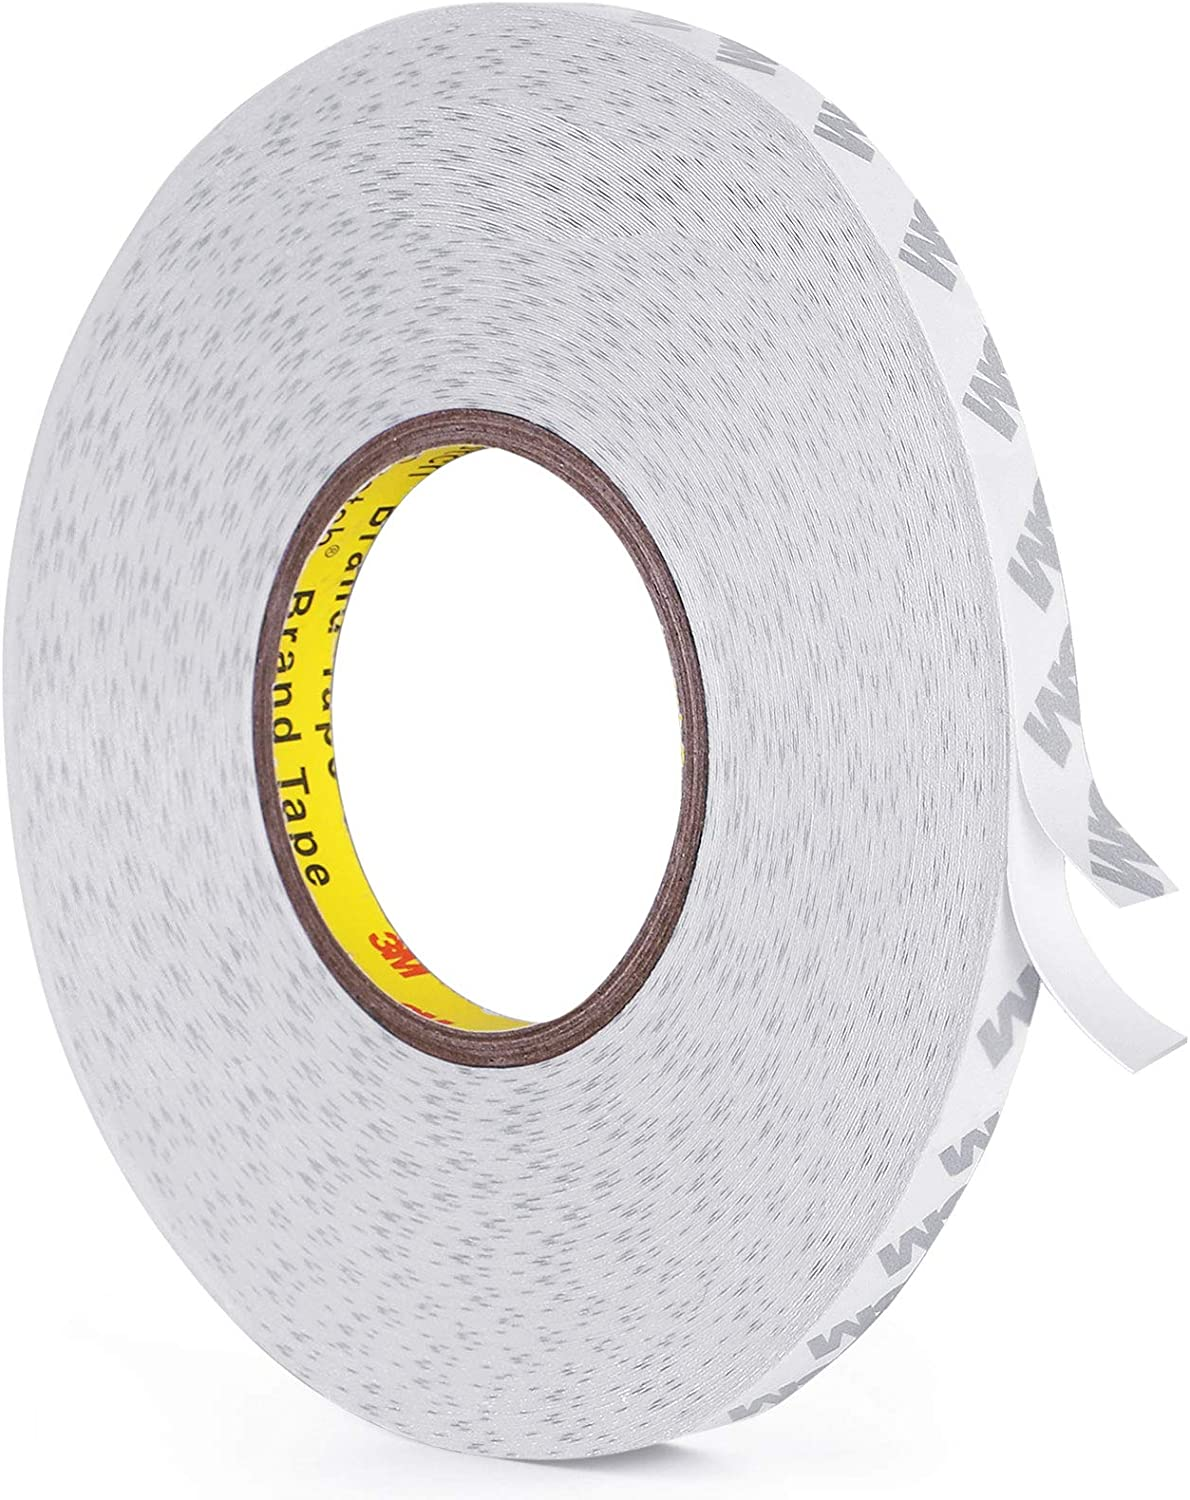 Double Sided Tape, 164FT Length, 0.39 Inch Width Thin Waterproof Mounting Tape, Easy Peel Off Two Sided Tape Foam Tape for Led Strip Lights, Car, Home, Office Decor, Made of 3M Tape